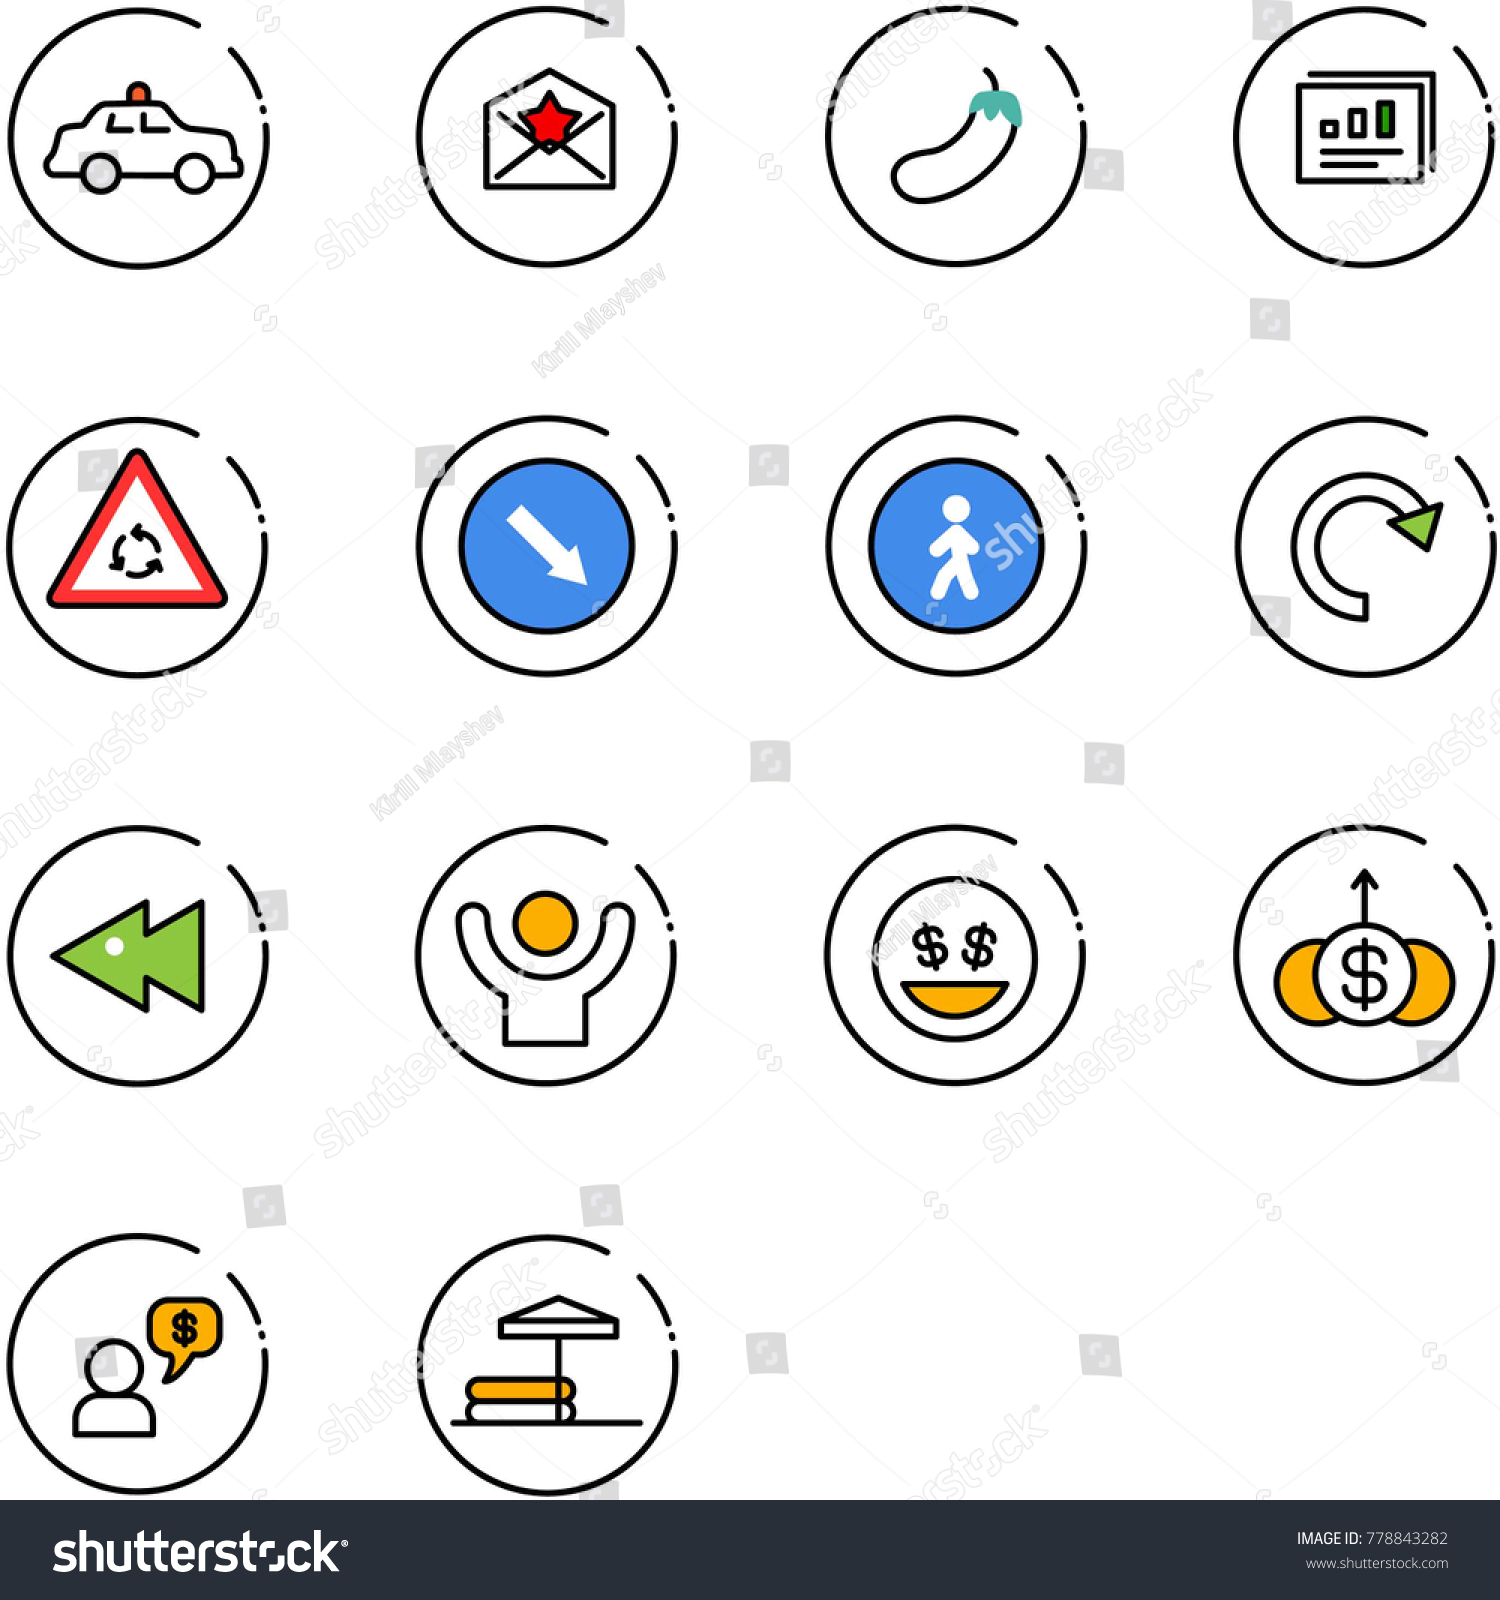 Line Vector Icon Set Safety Car Stock Vector (Royalty Free) 778843282